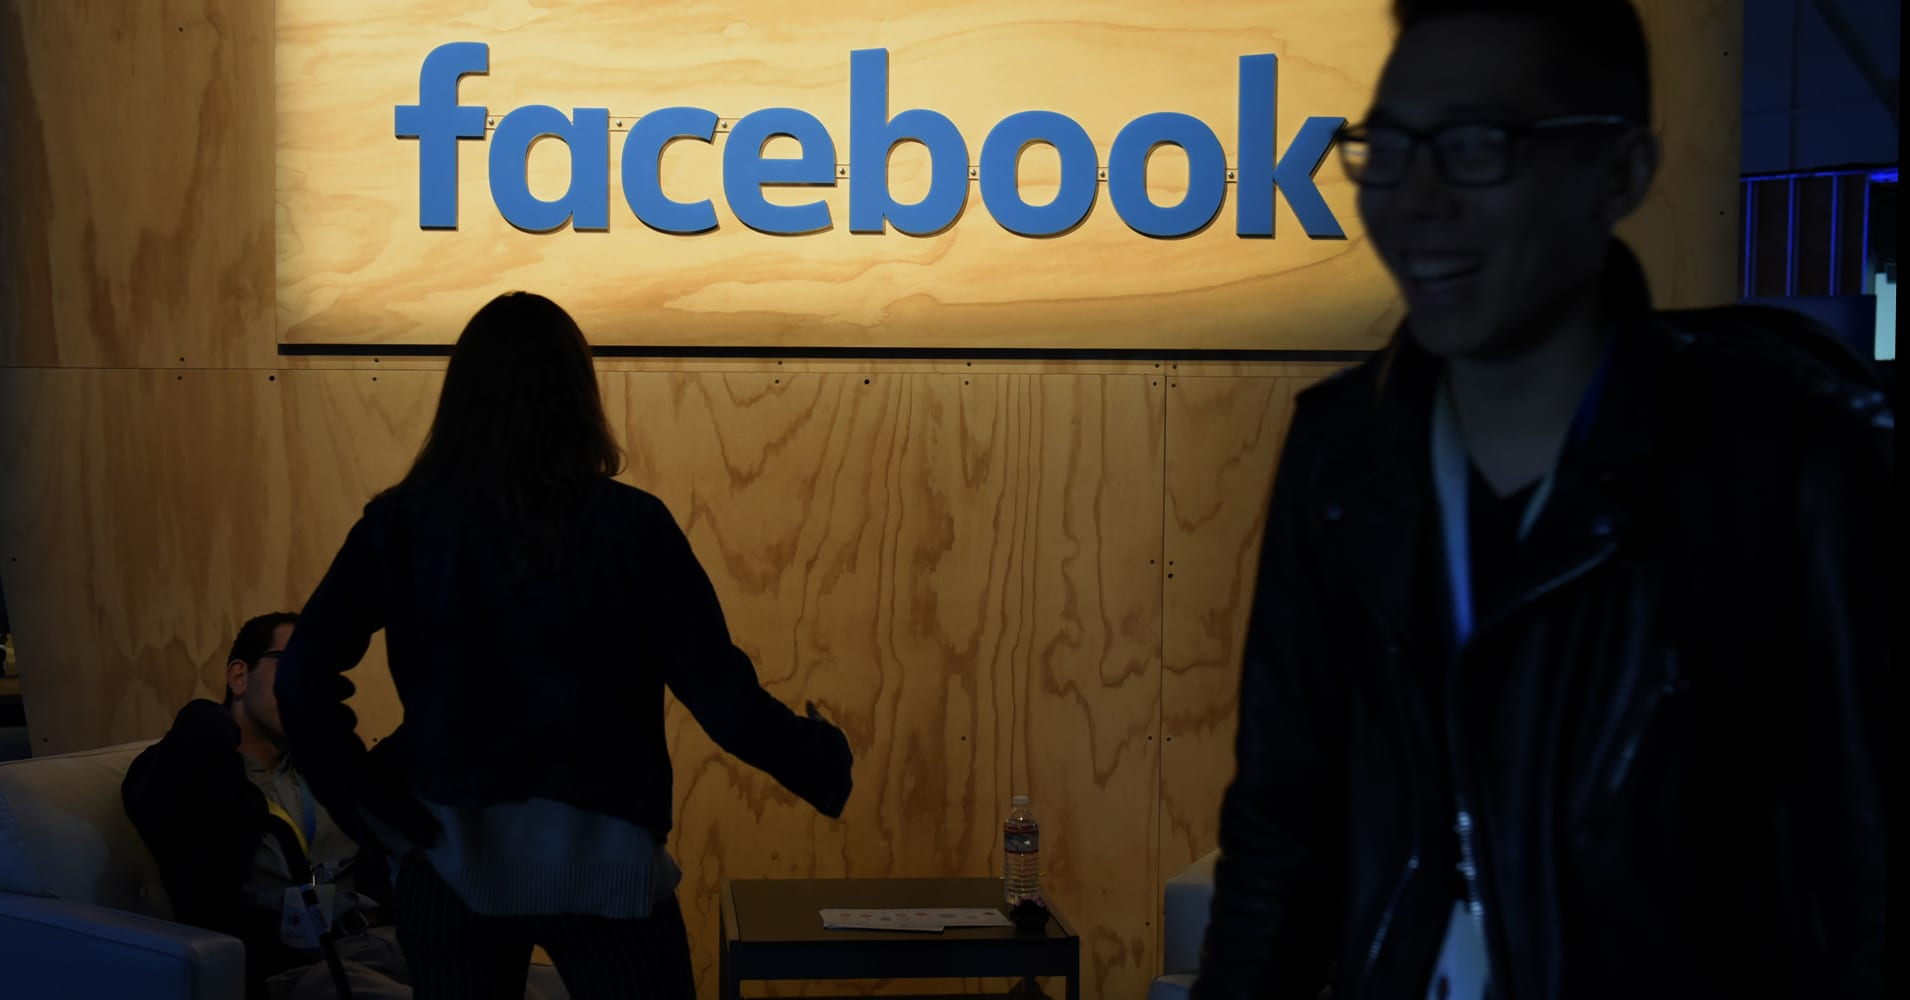 Facebook to offer 'political bias' training to employees